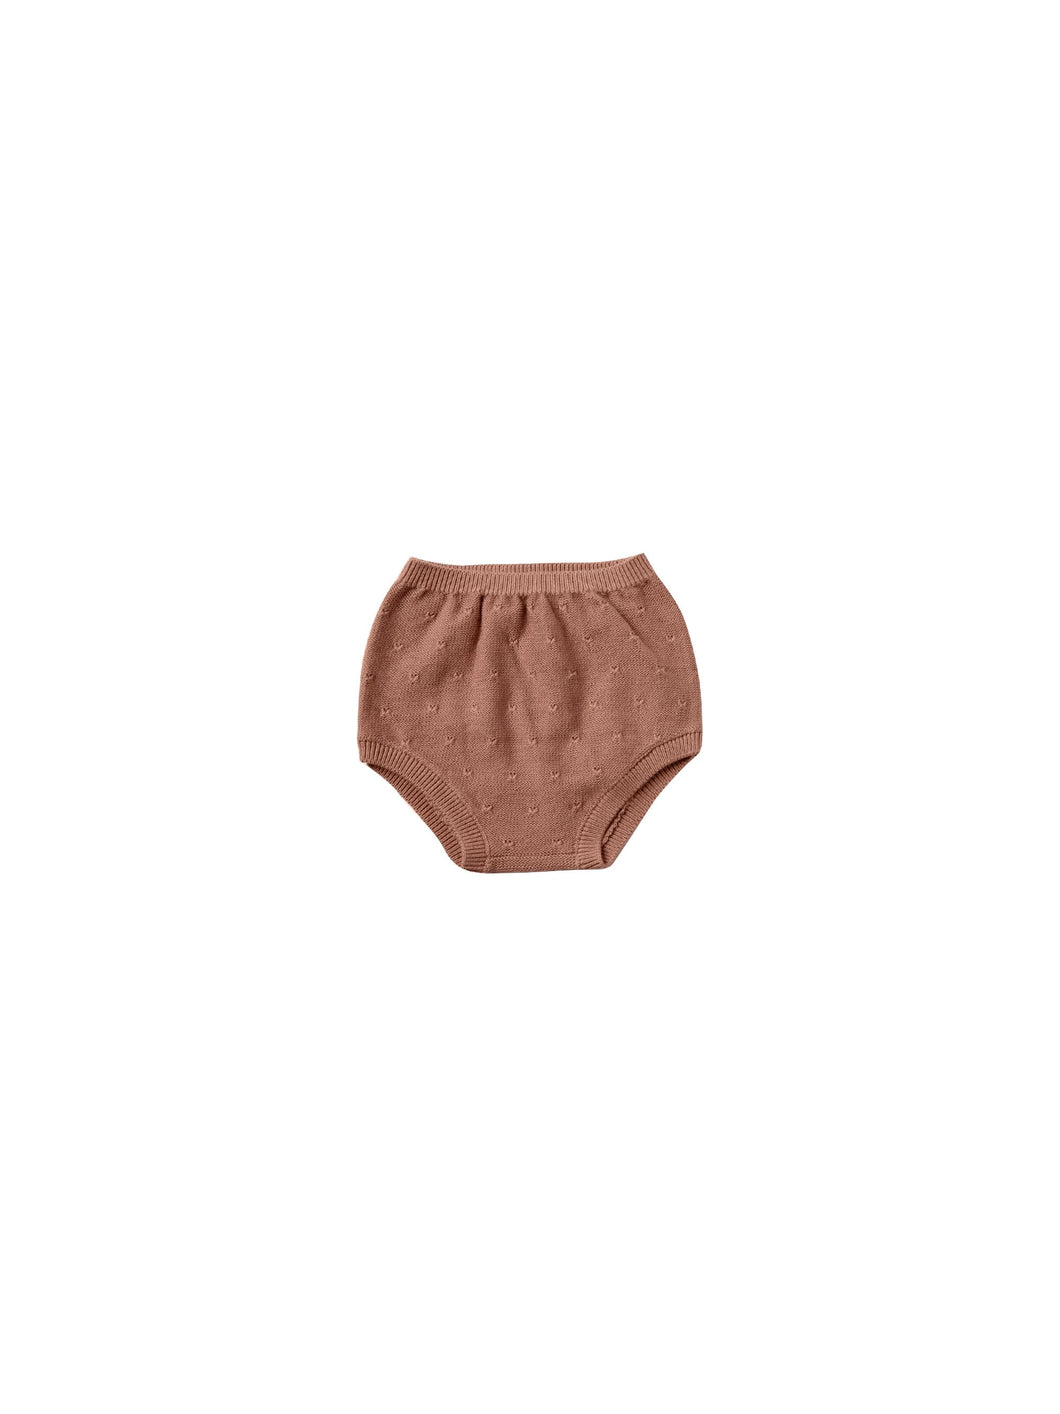 Quincy Mae knit bloomer - clay